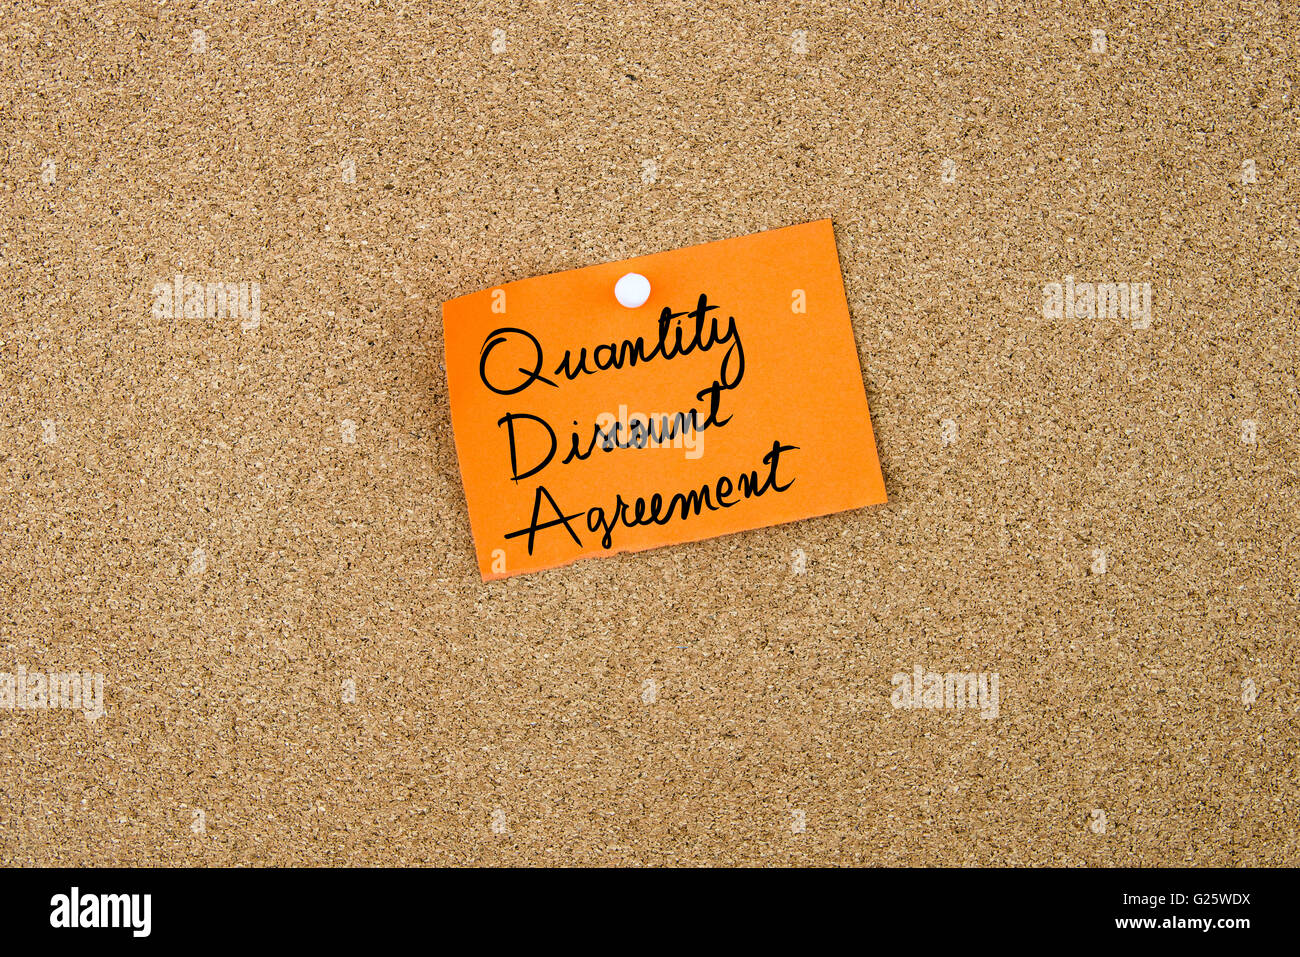 Quantity Discount Stock Photos Images Alamy Pure Baby Hand Mouth Wipes 60s Agreement Written On Orange Paper Note Pinned Cork Board With White Thumbtacks